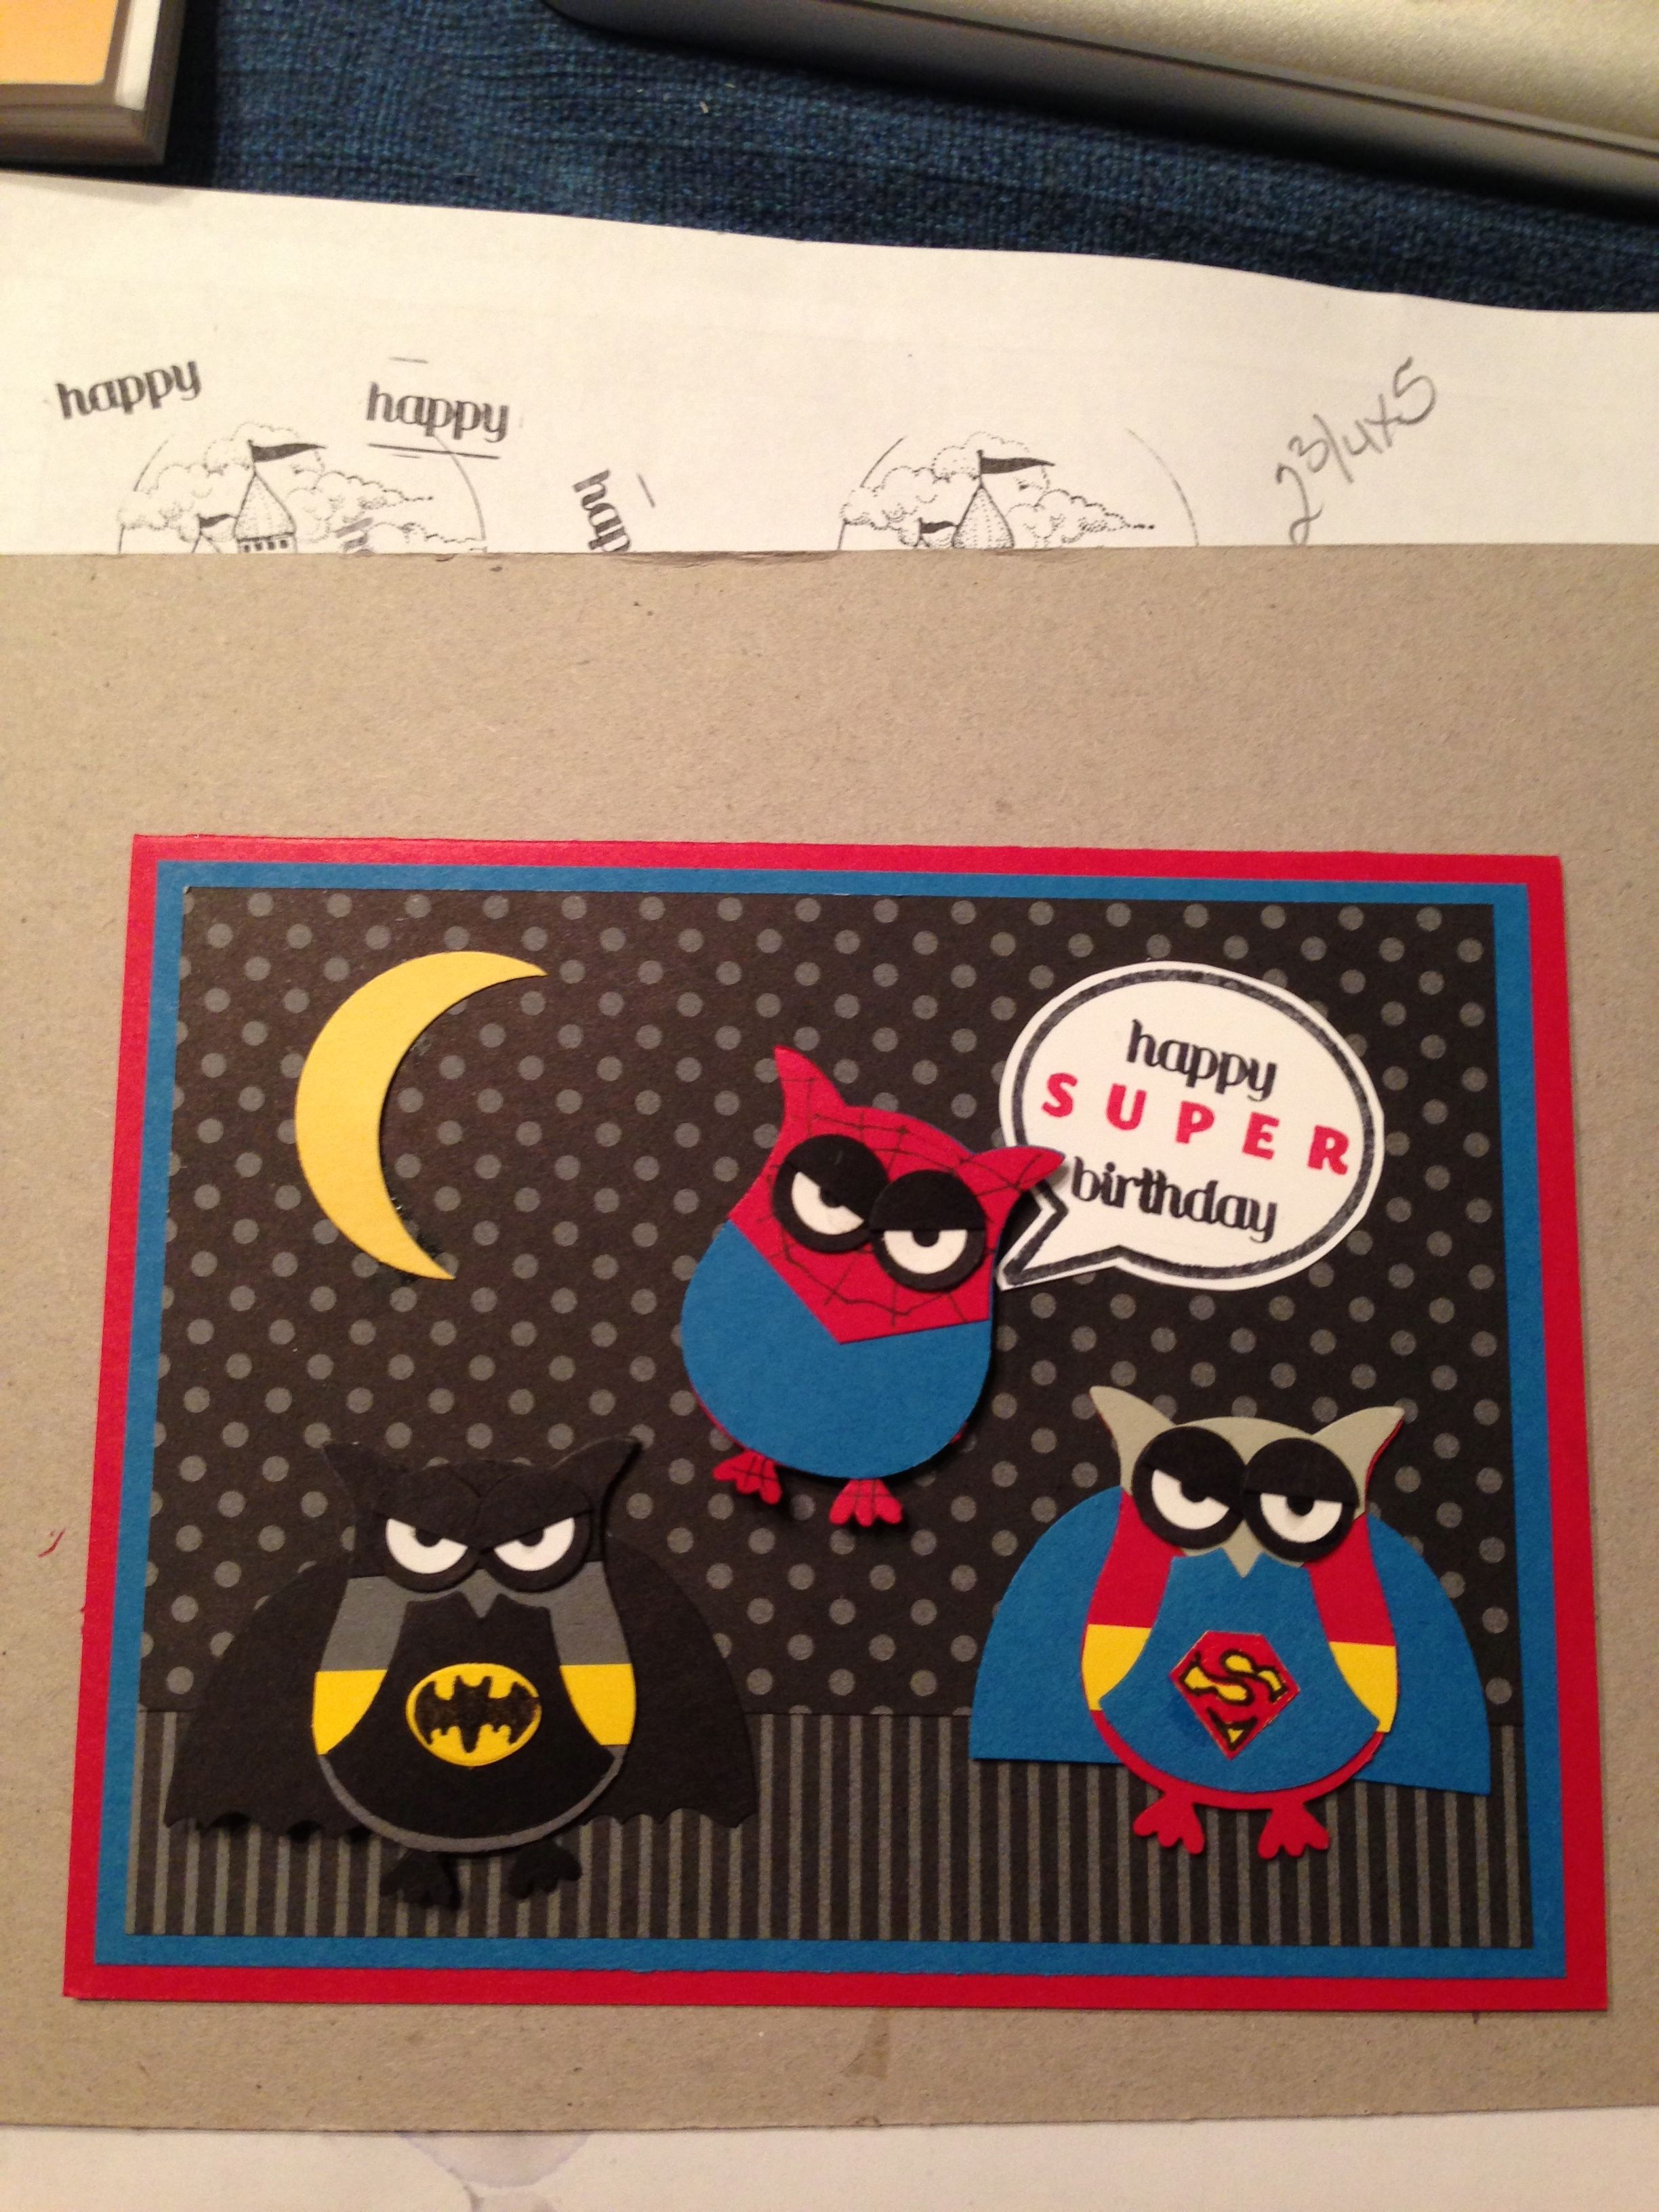 Heres my superhero birthday card from the stampin up owl punch heres my superhero birthday card from the stampin up owl punch lots of inspiration from bookmarktalkfo Images